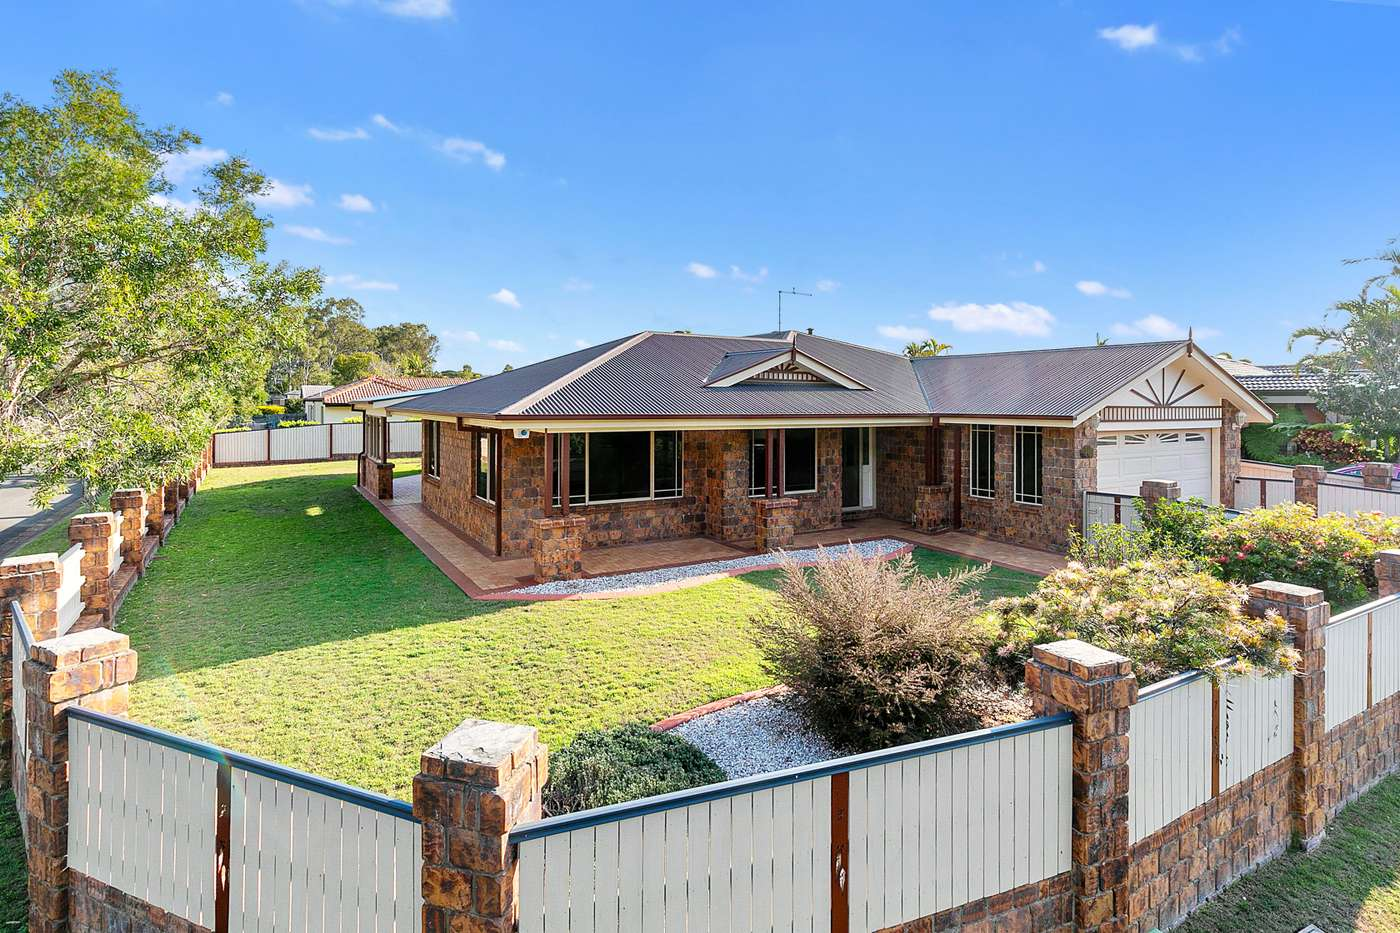 Main view of Homely house listing, 21 Wisteria Street, Ormiston, QLD 4160